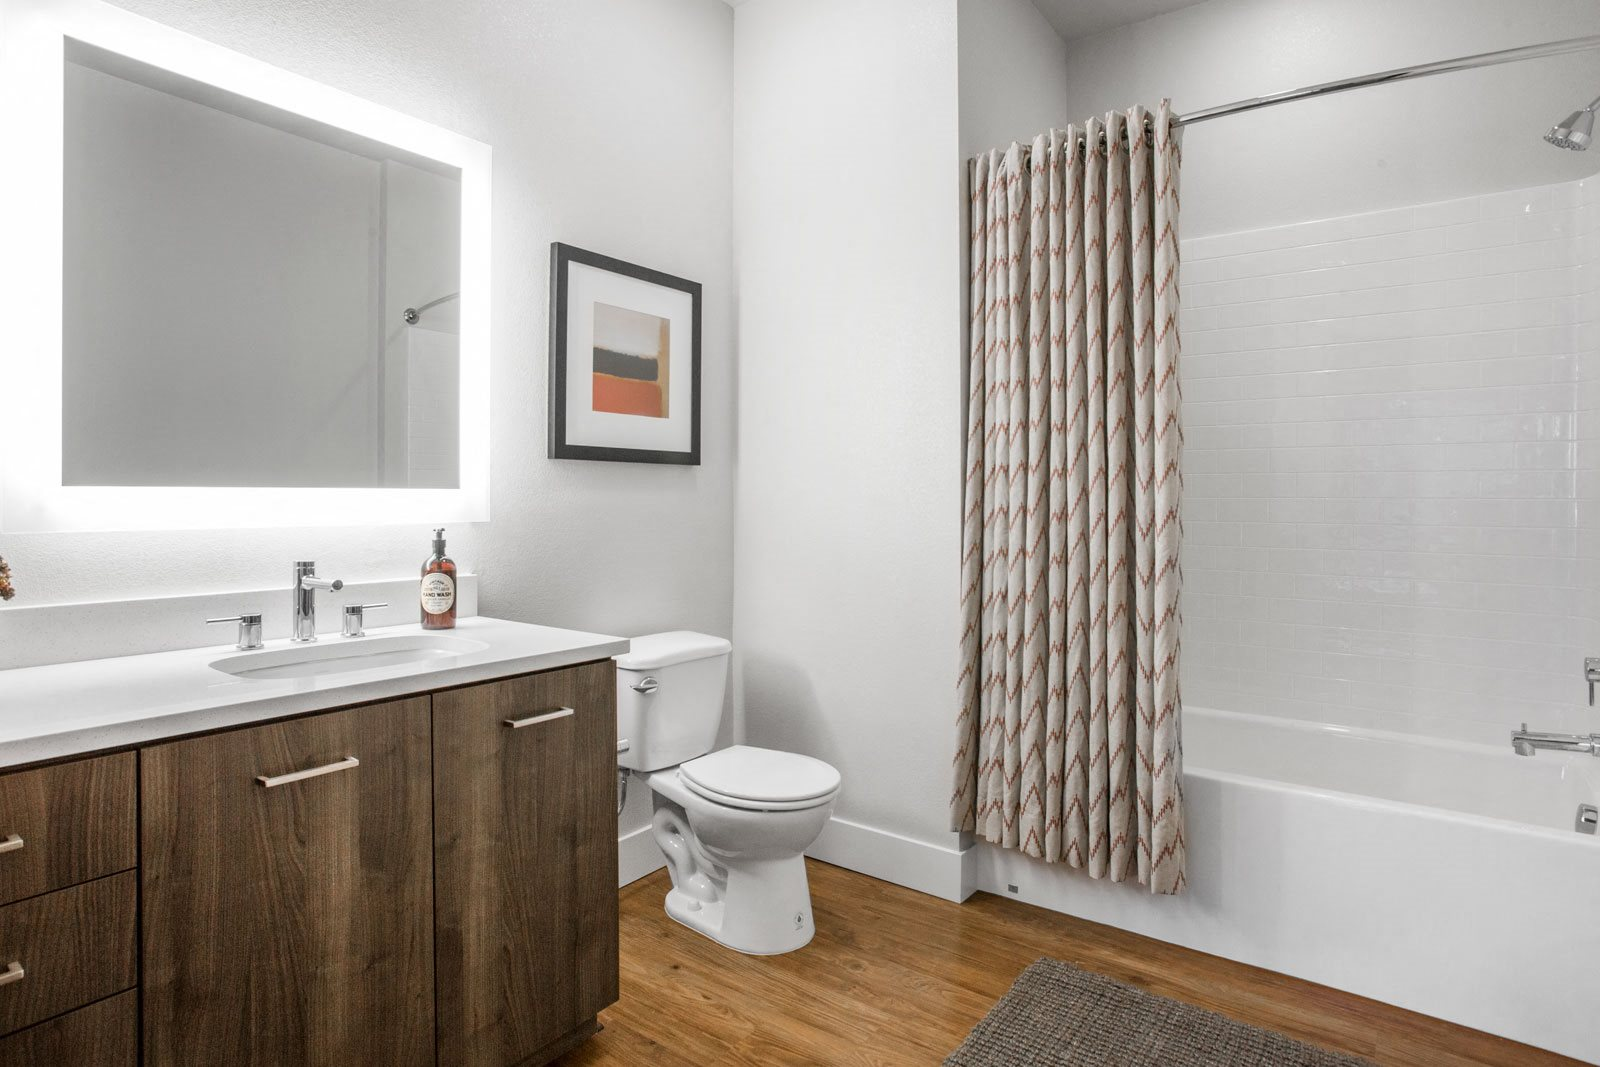 Spacious Bathrooms at The Marston by Windsor, 94063, CA